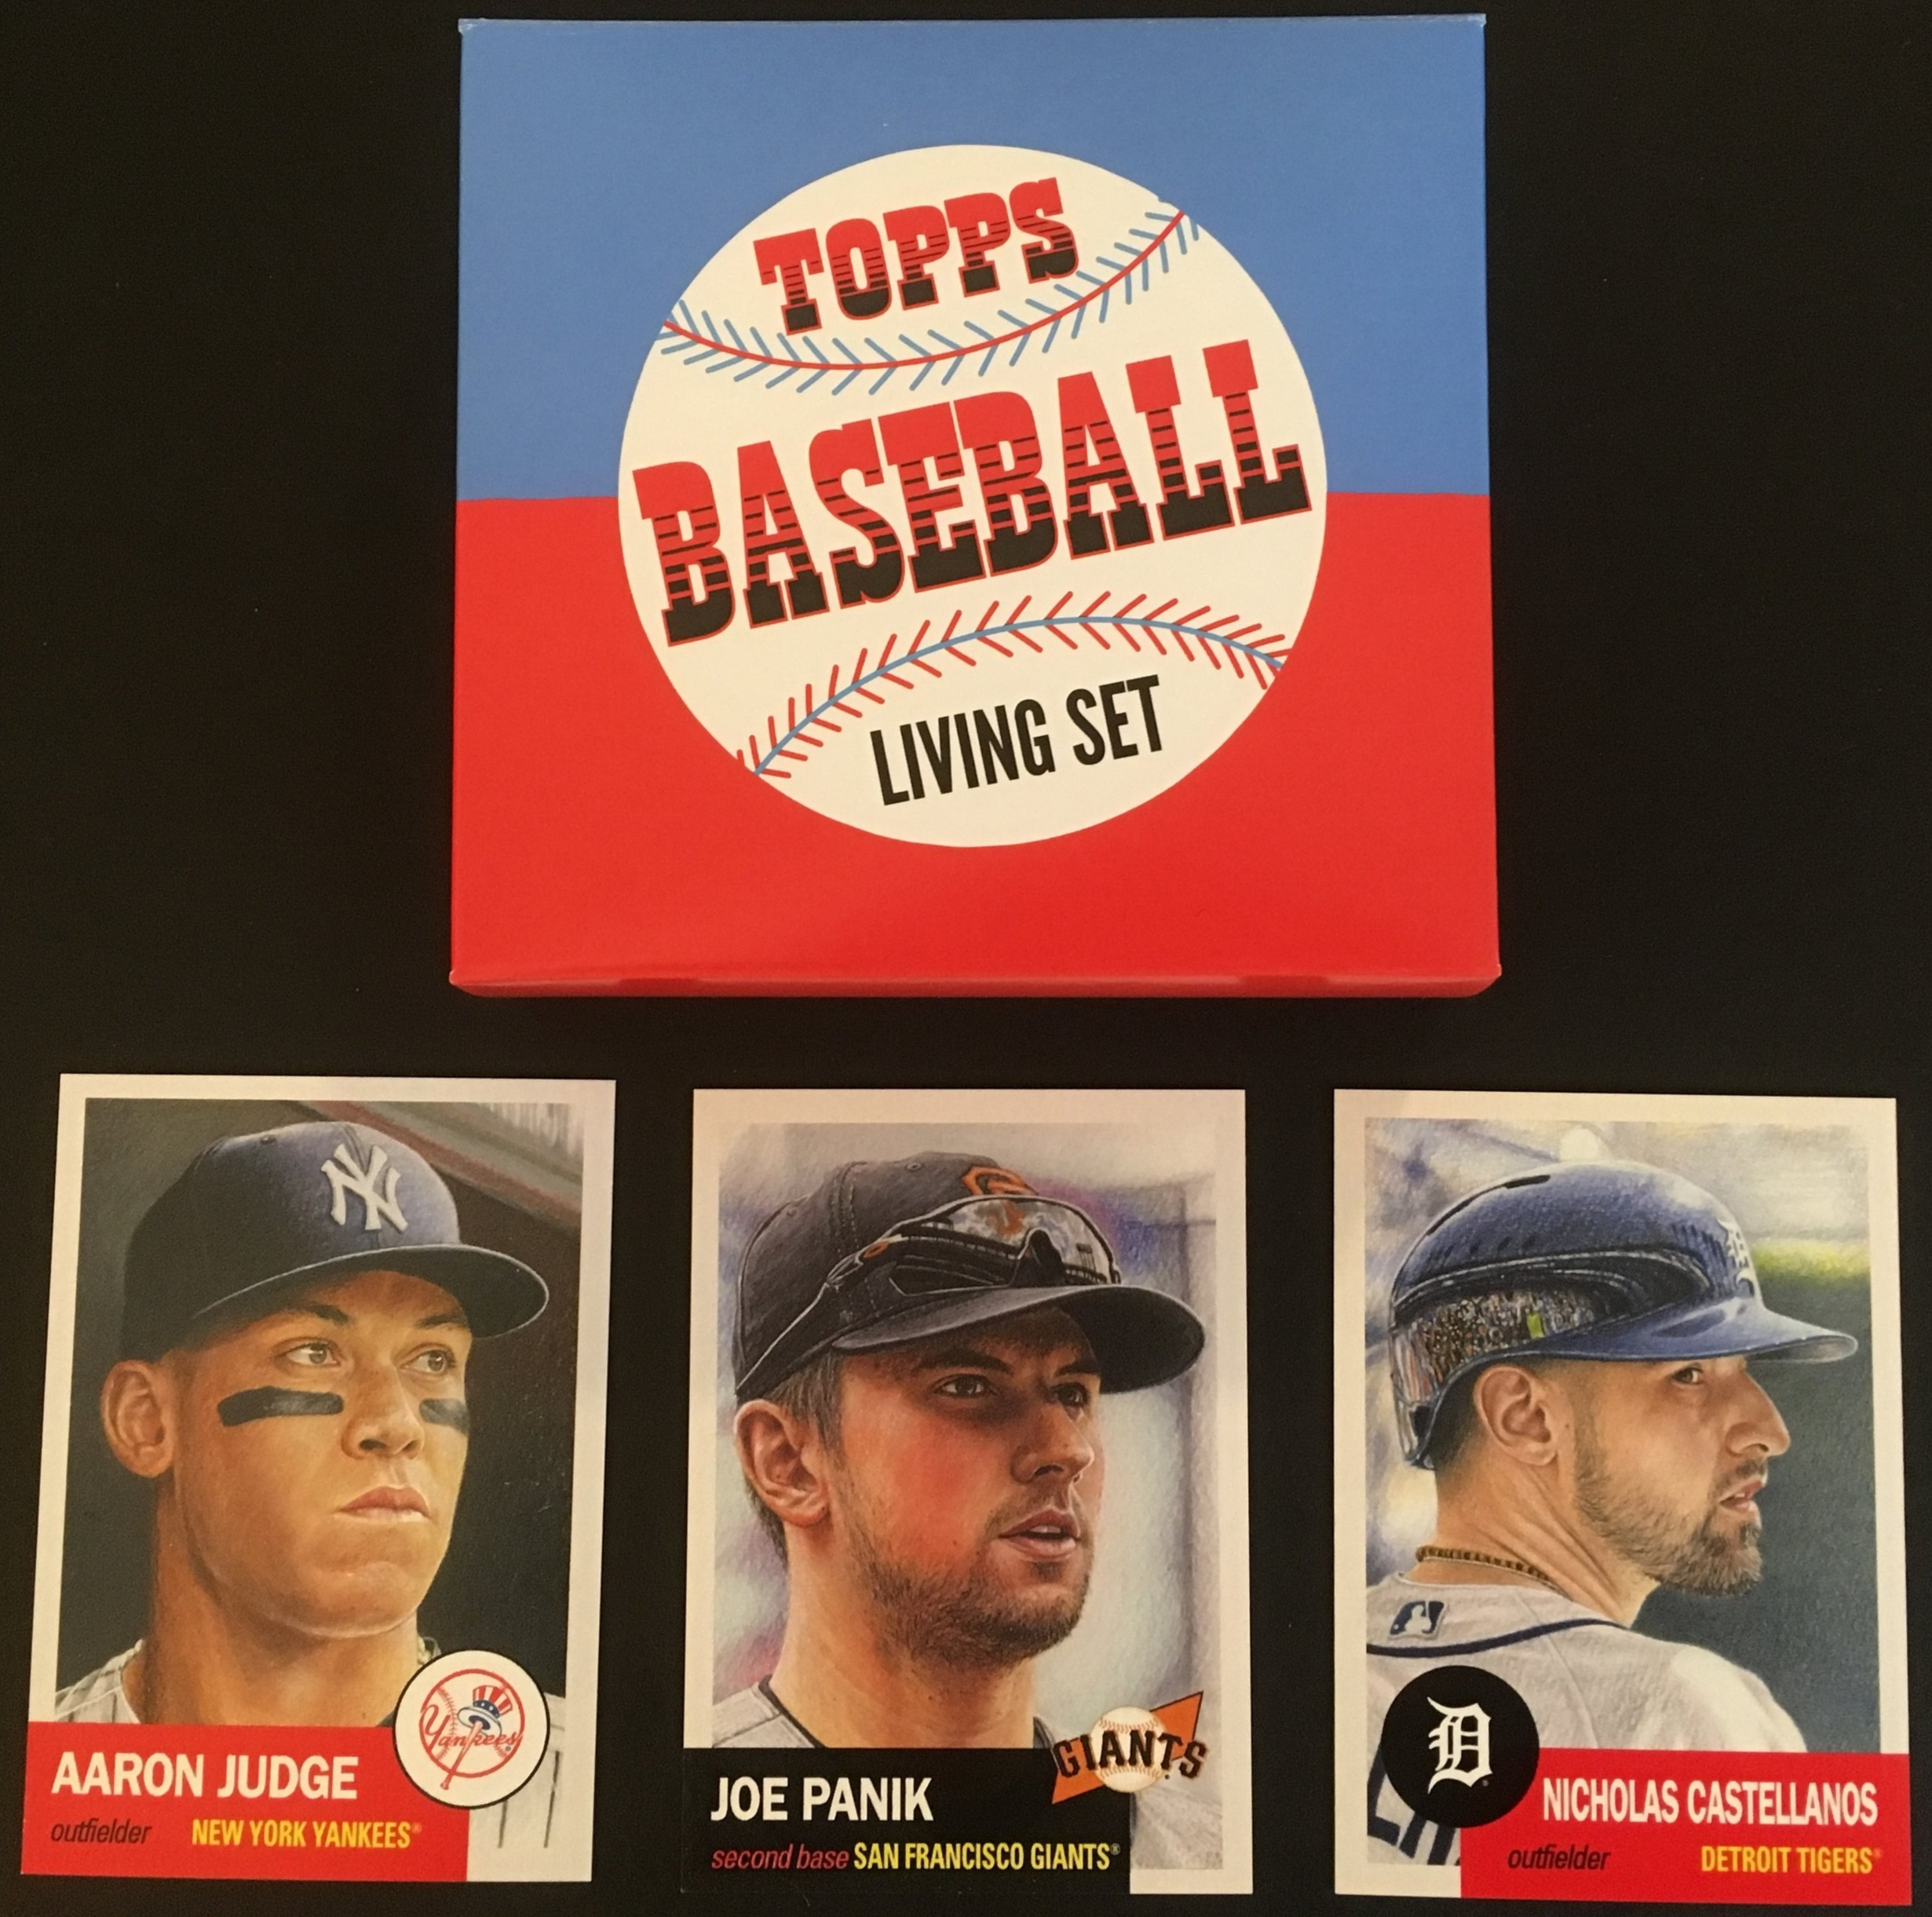 The Topps Living set launched in March 2018 with these three cards.